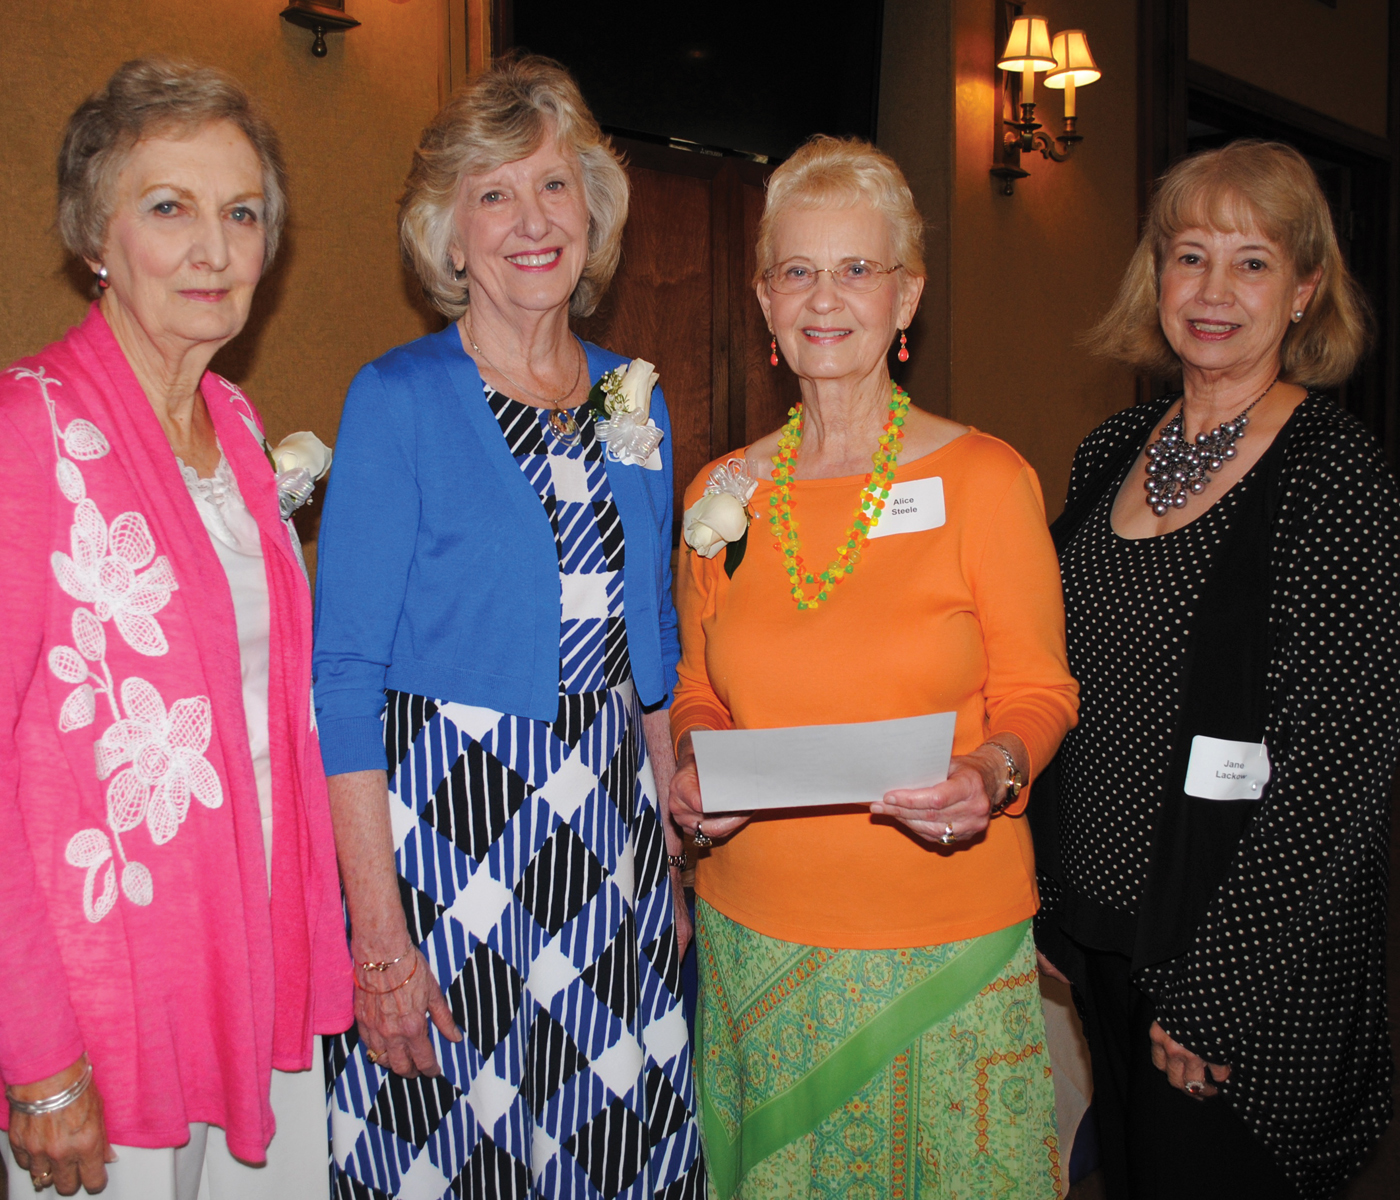 Mary Voigt, second from left, is the new president of the Houston Symphony League Bay Area. Among those who will be assisting her in the coming year are, from left, Nominations Chairman Dana Puddy, Corresponding Secretary Alice Steele and Recording Secretary Jane Lackow.